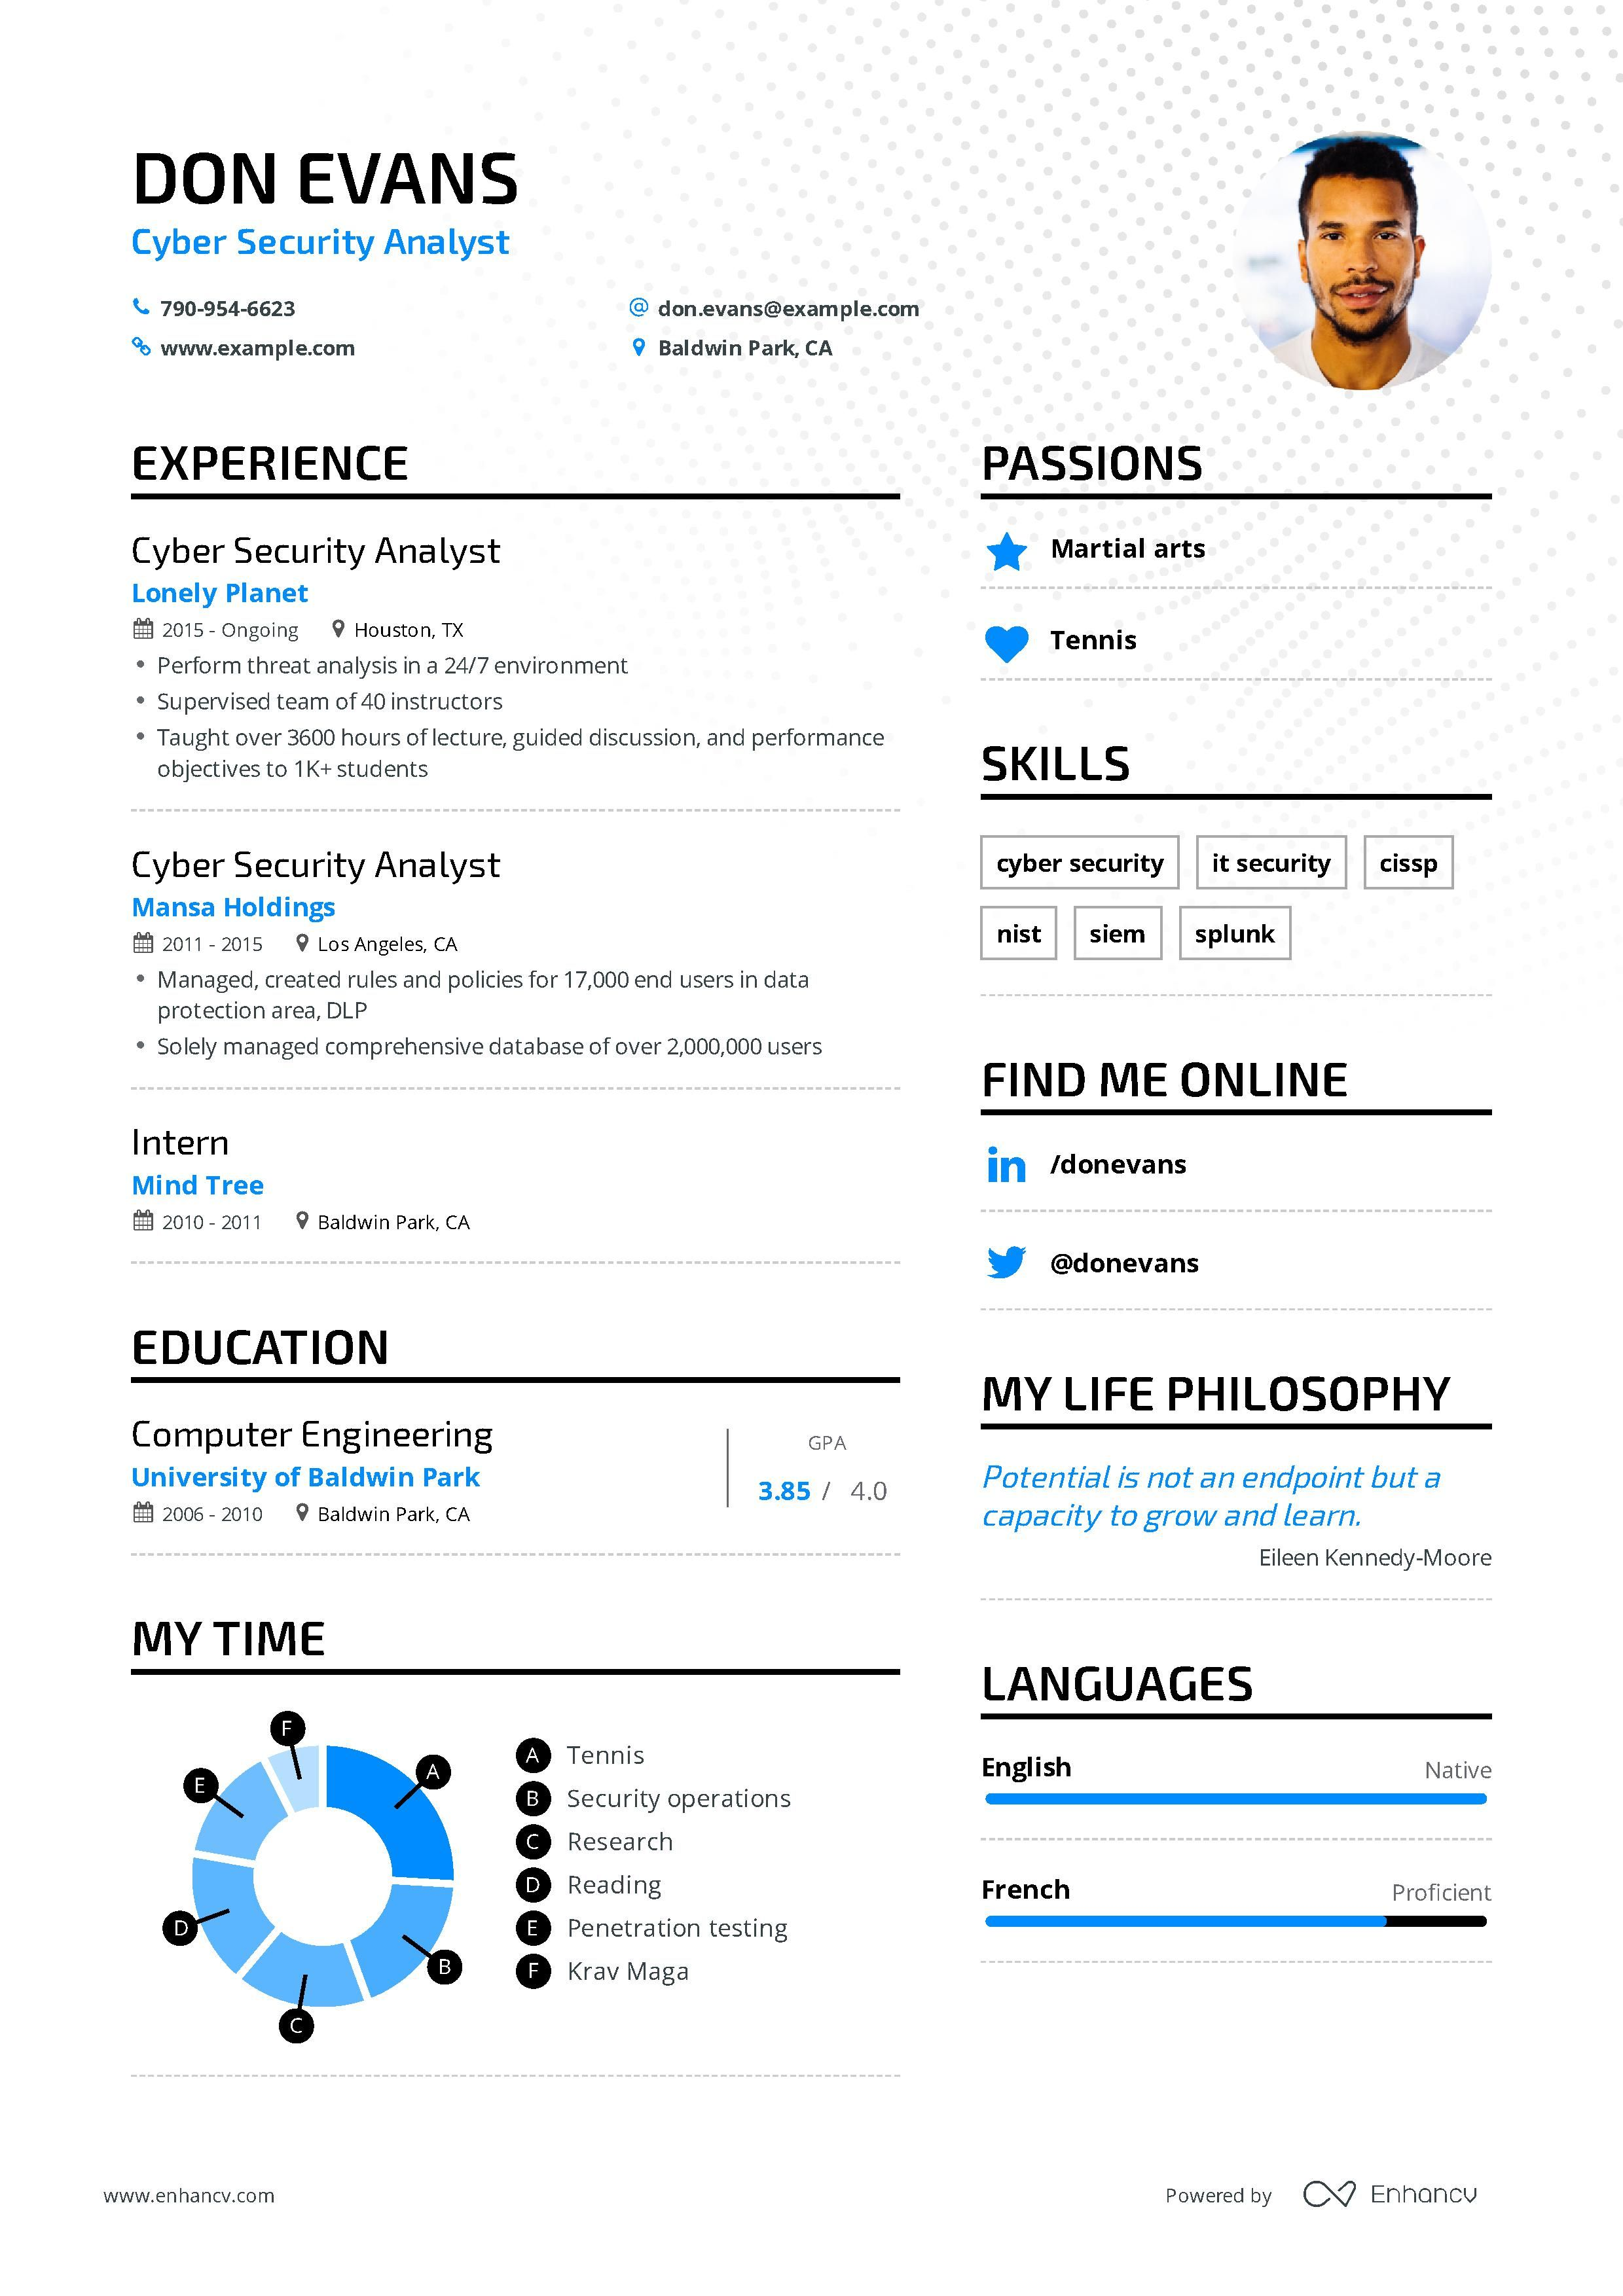 Cyber security analyst resume examples guide pro tips